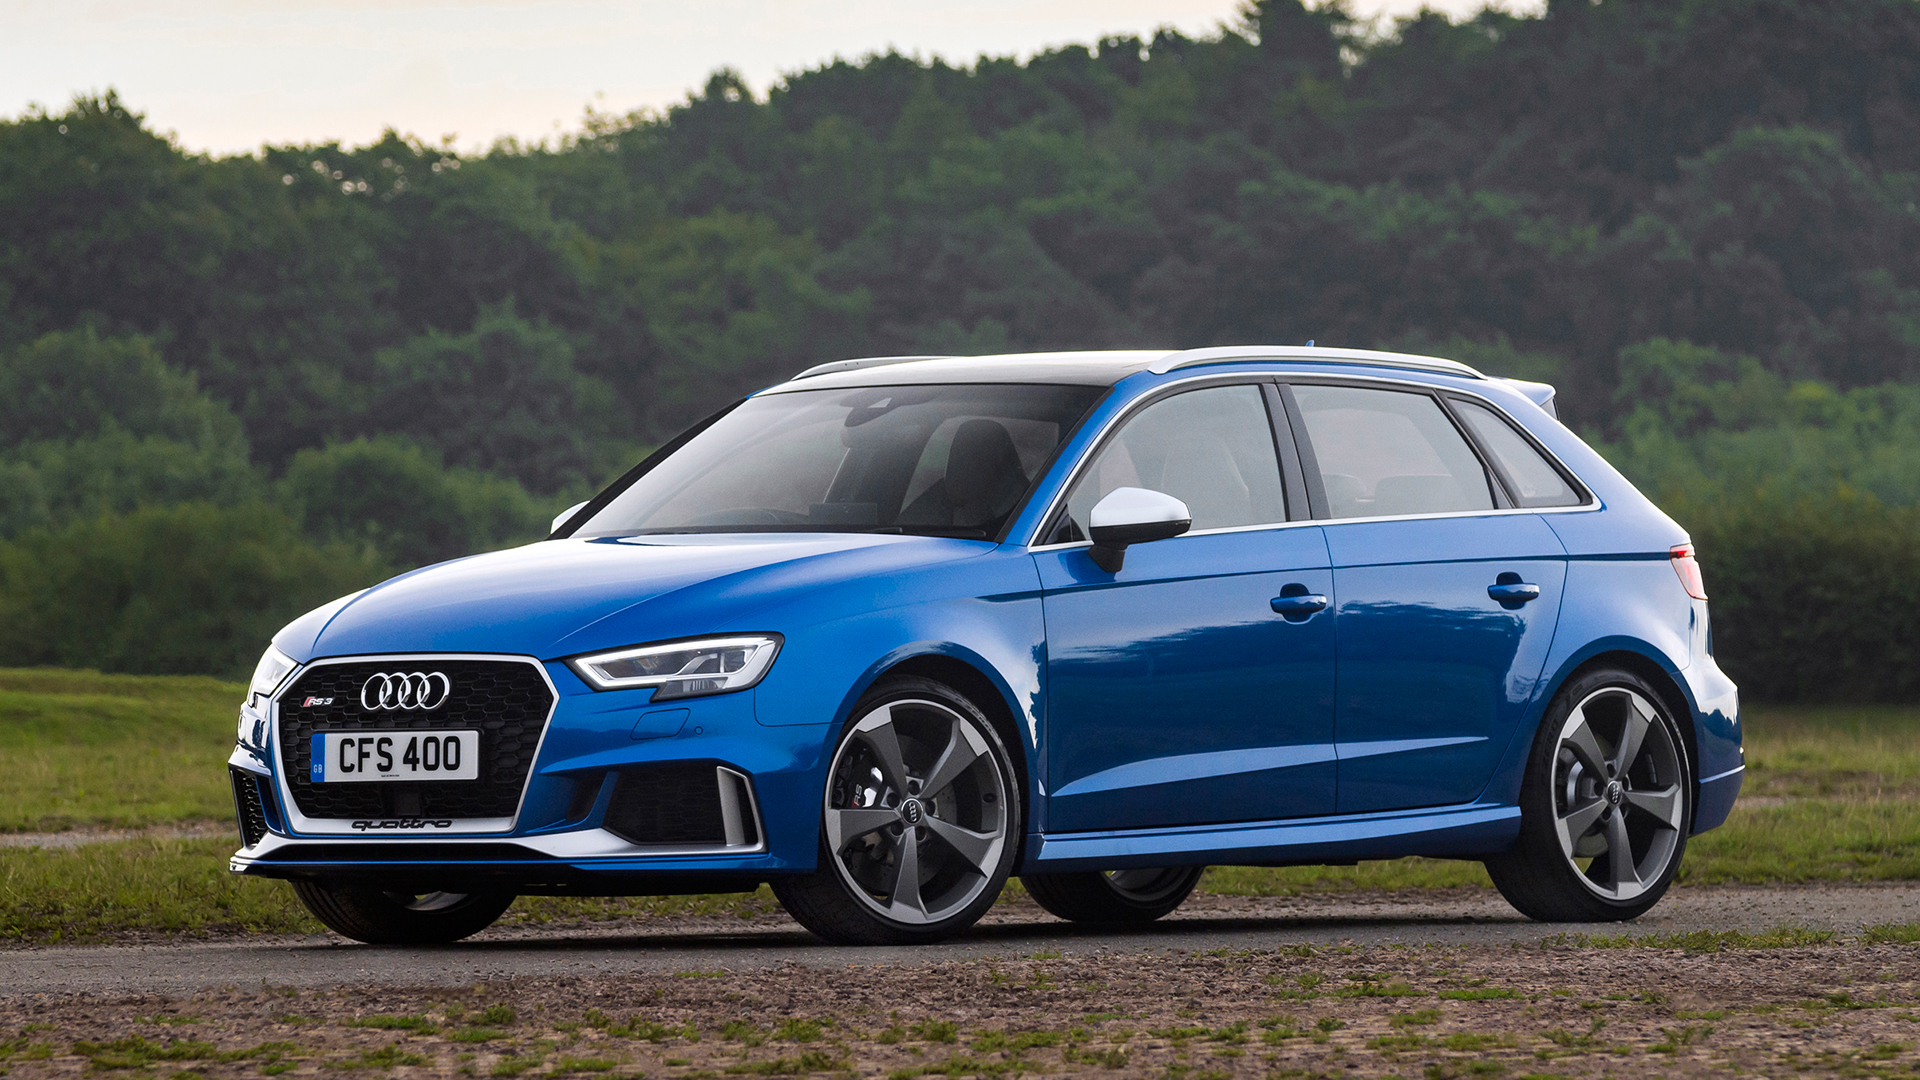 used audi rs3 cars for sale on auto trader uk. Black Bedroom Furniture Sets. Home Design Ideas